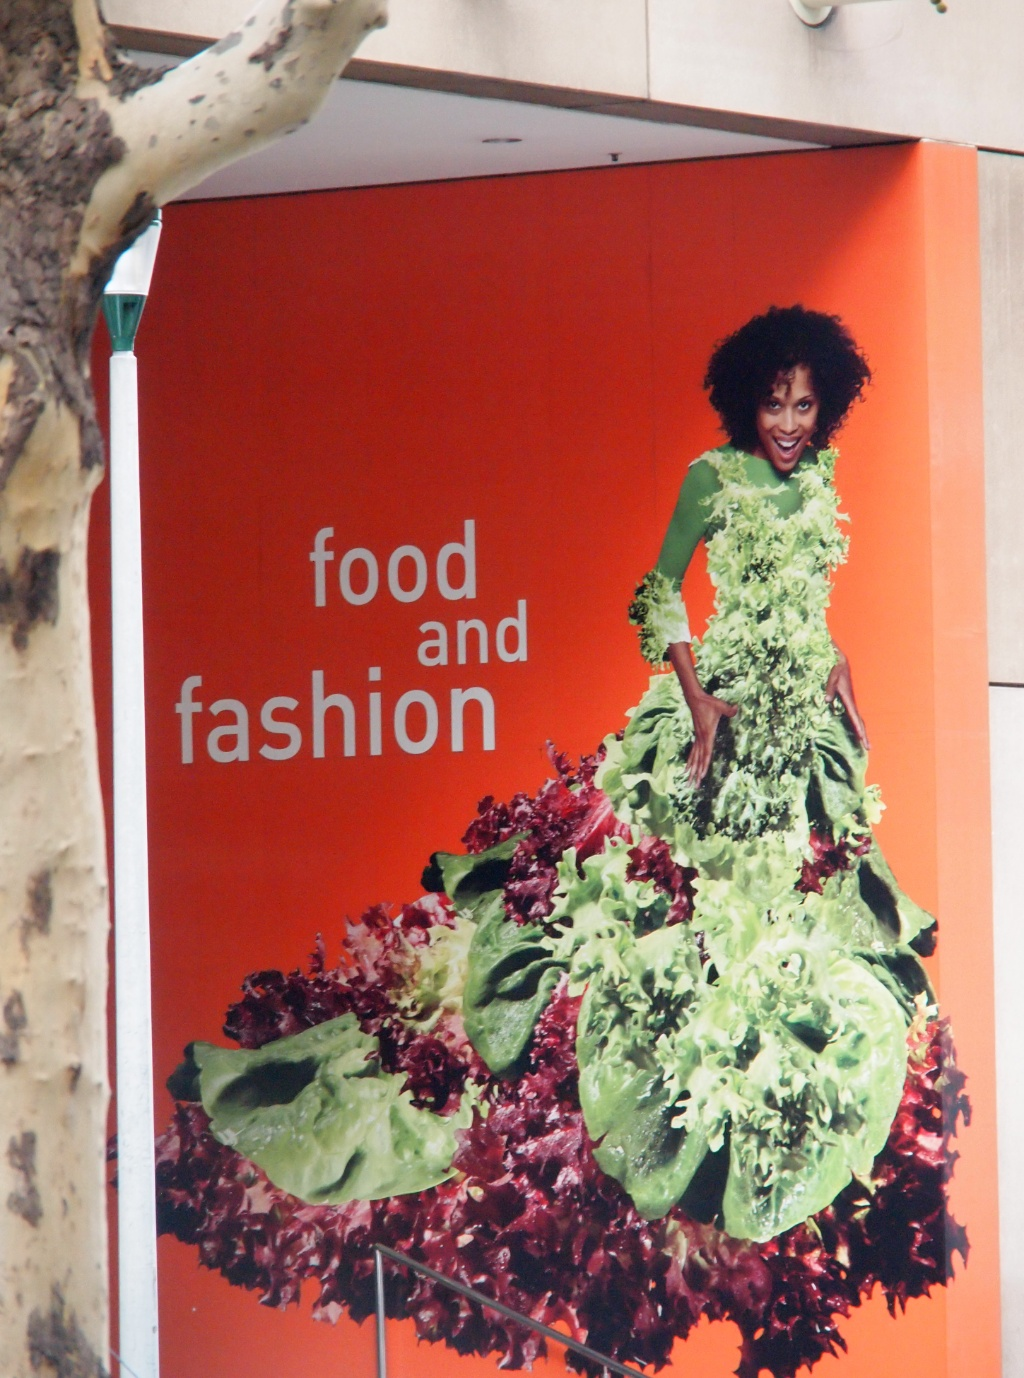 food and fashion